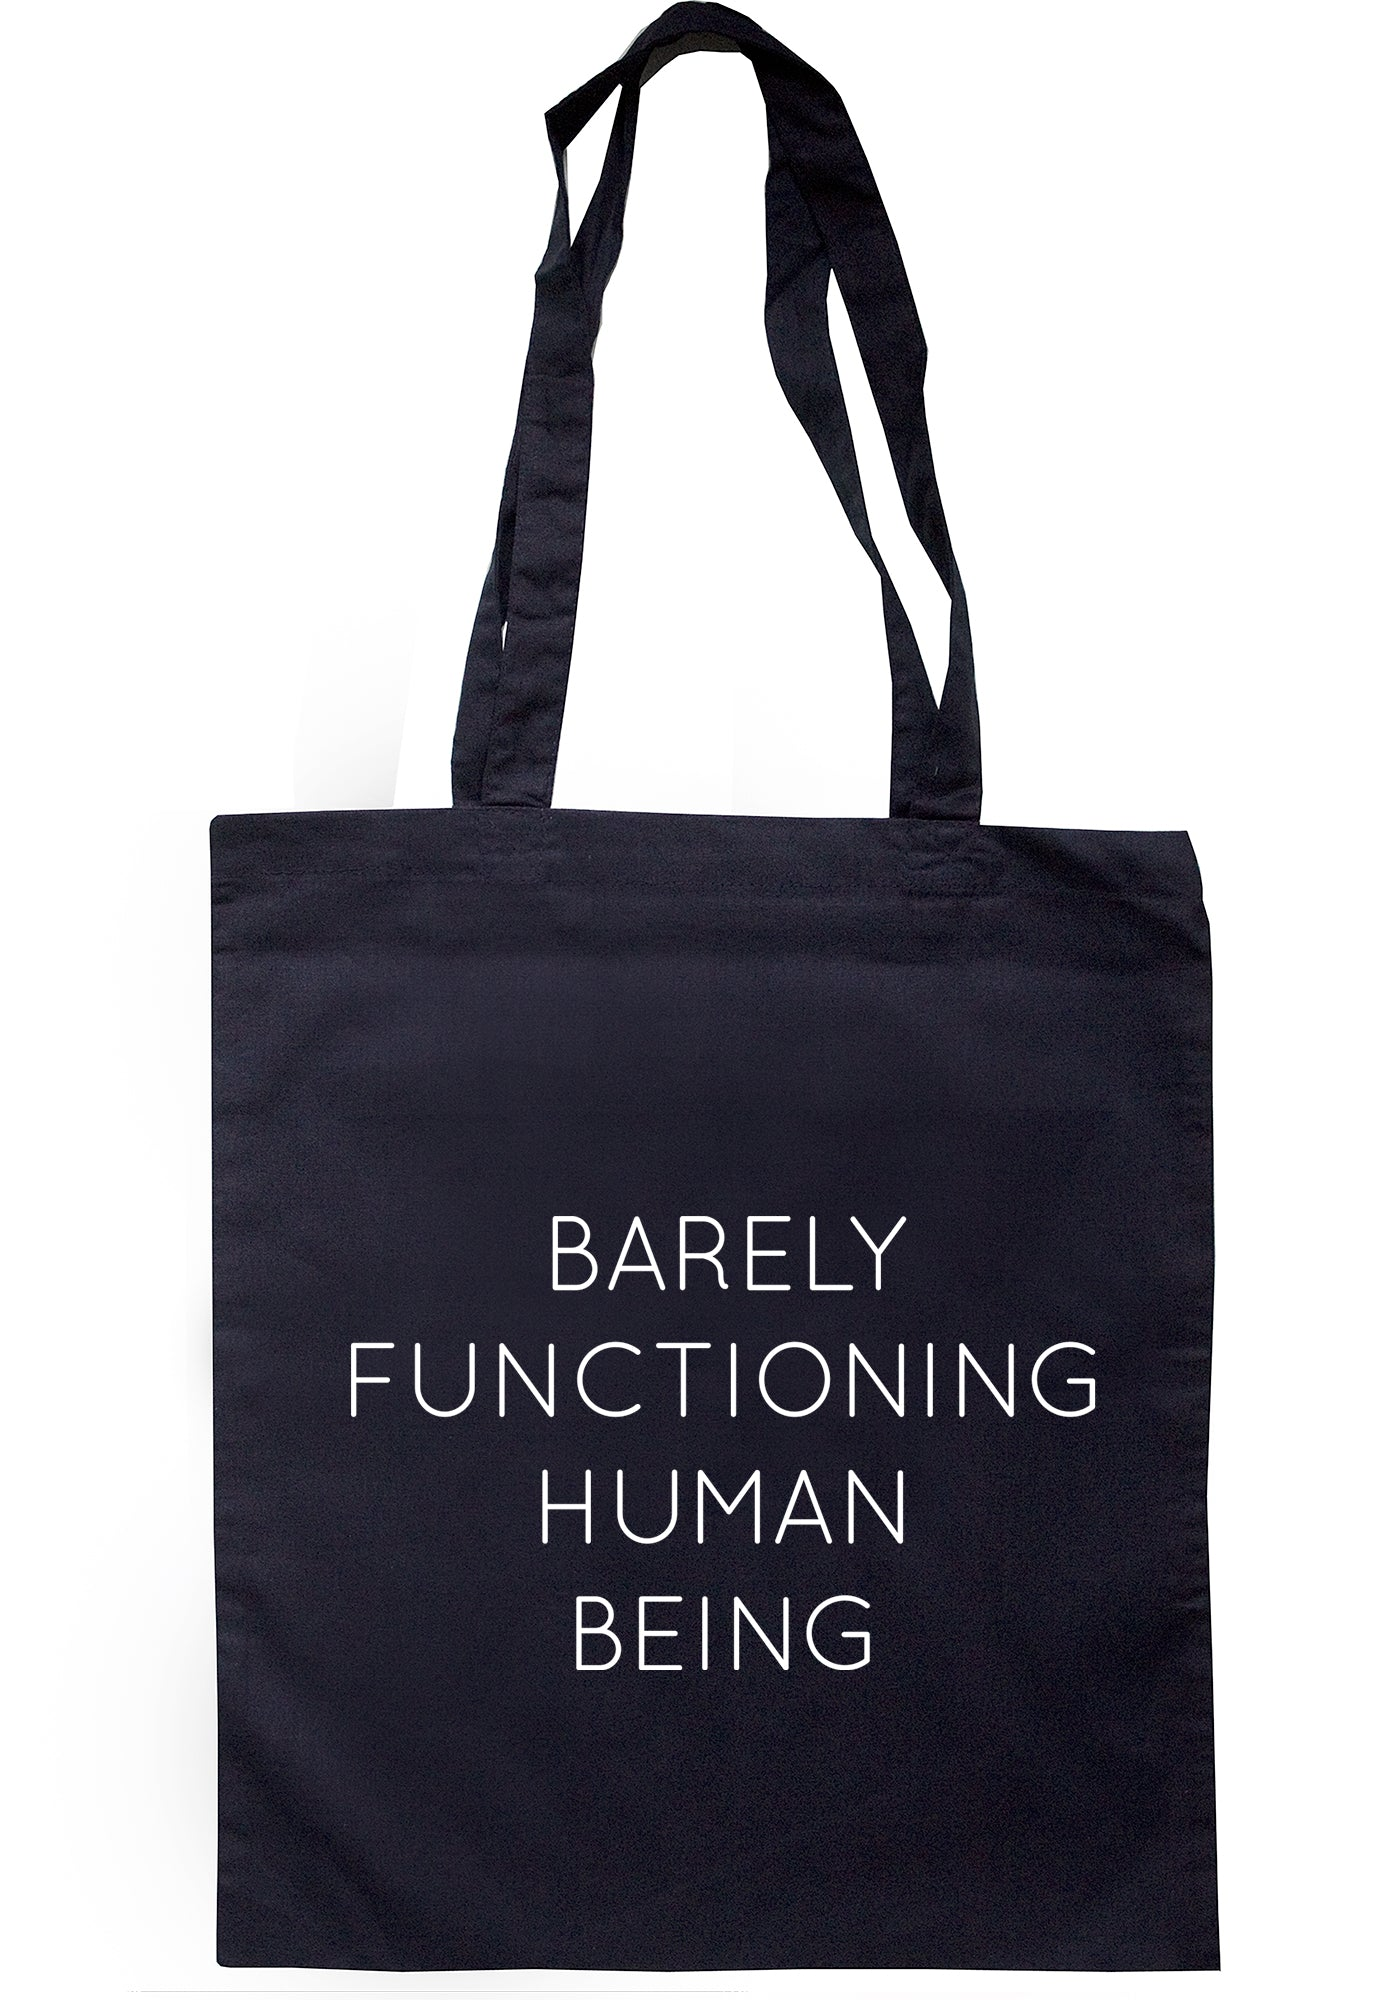 Barely Functioning Human Being Tote Bag TB1804